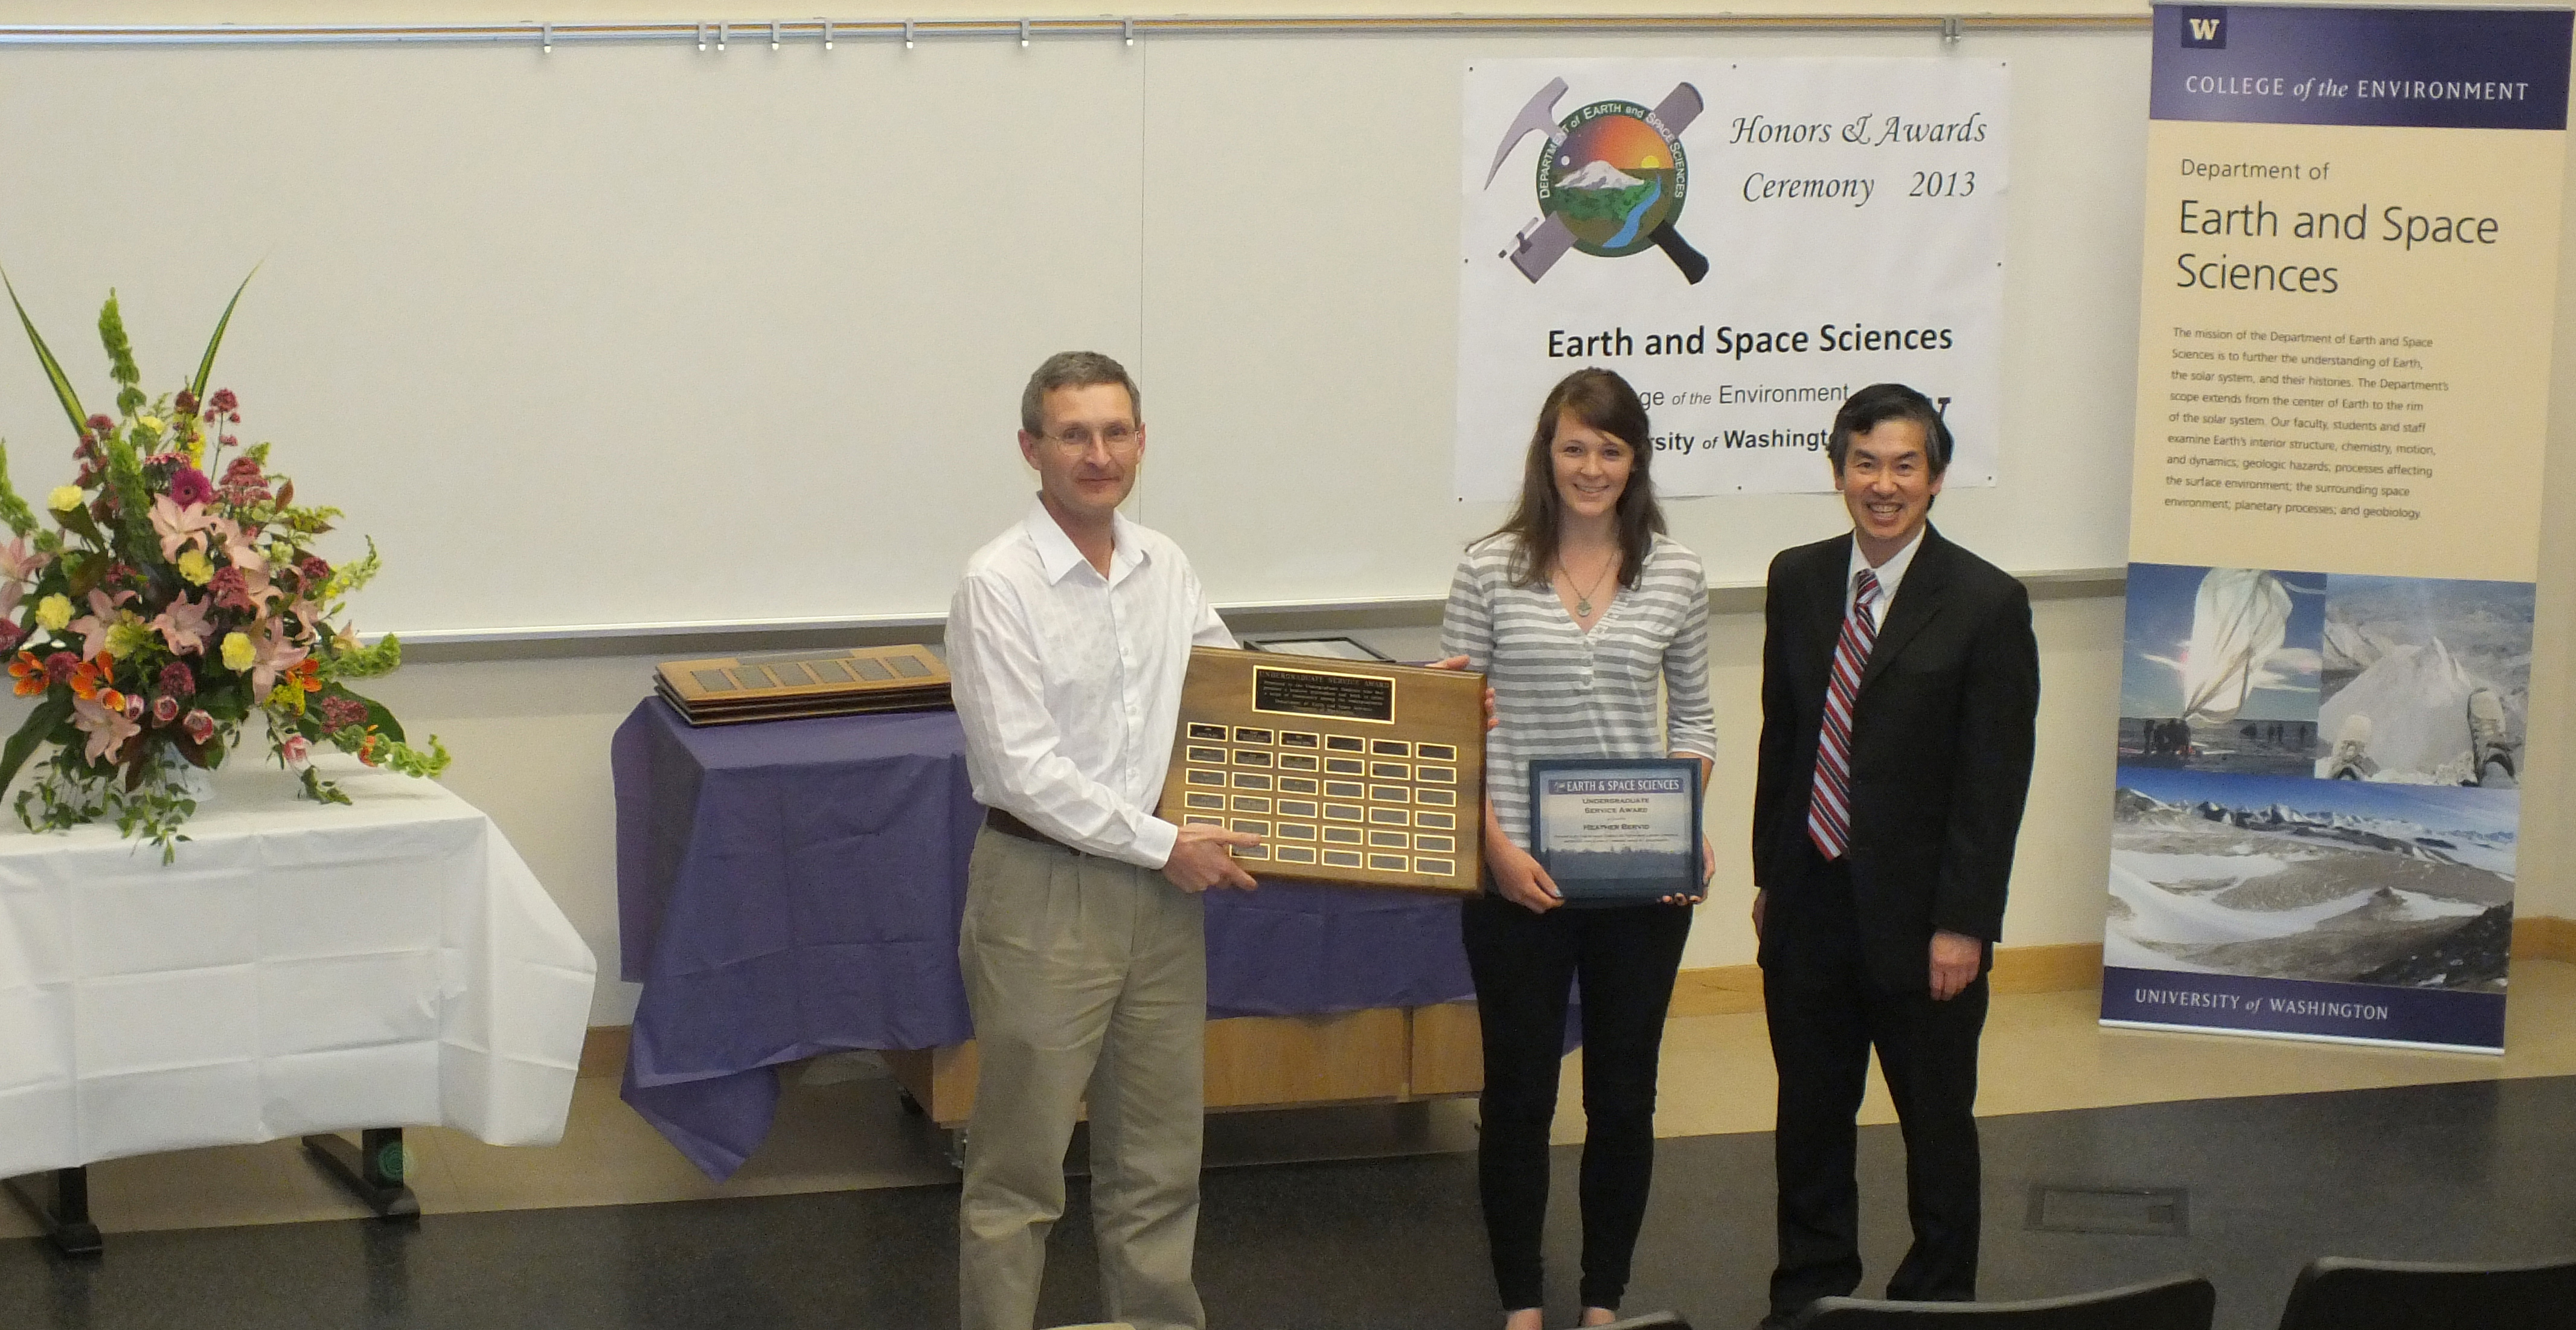 Photo of Heather Bervid receiving the Undergrad Service Award from John Stone and Robert Winglee.